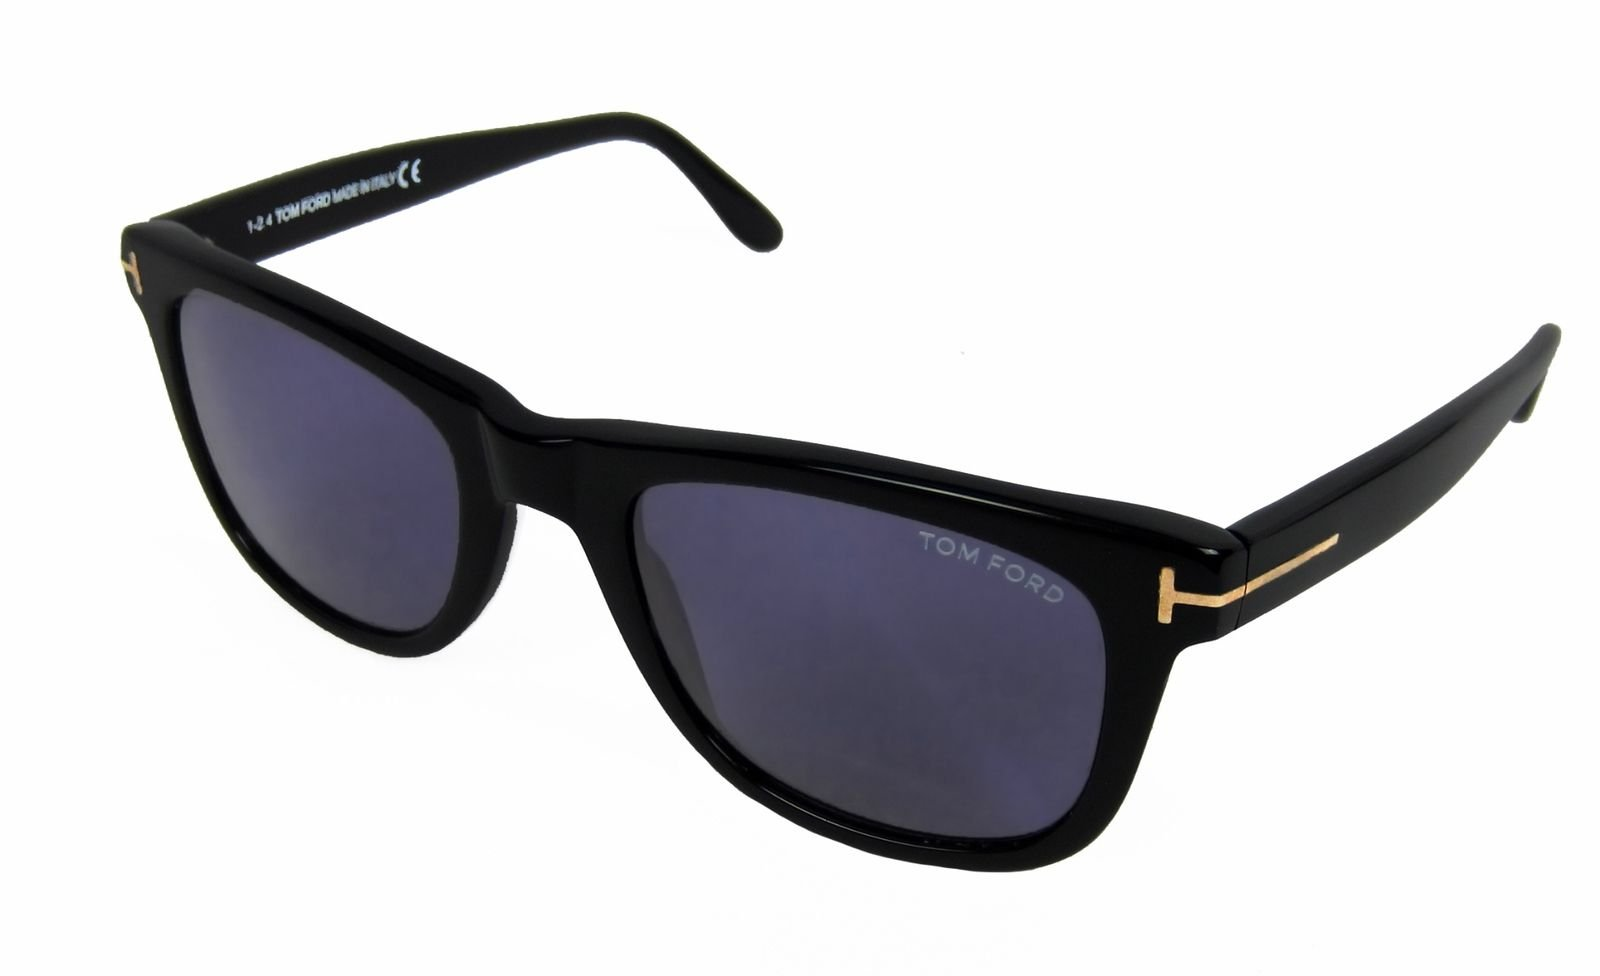 Details about Tom Ford Leo Square Sunglasses Black with Gold Accent Blue  Solid Lenses 52 mm 76bd0f55ee87